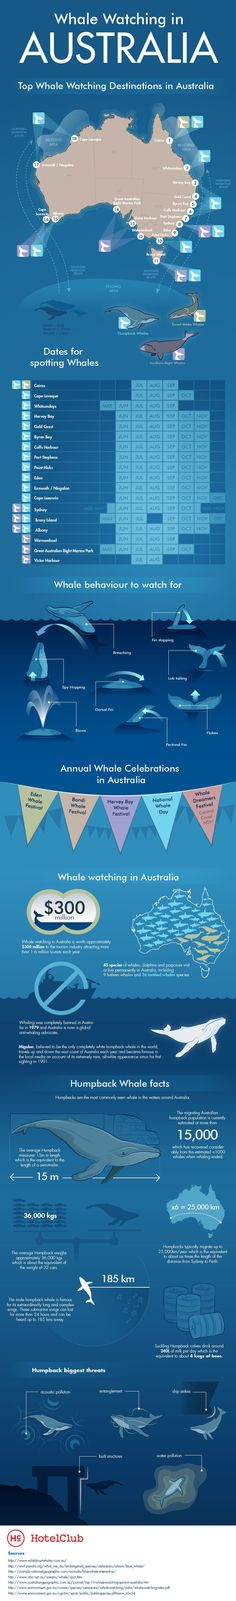 Whale watching in Australia